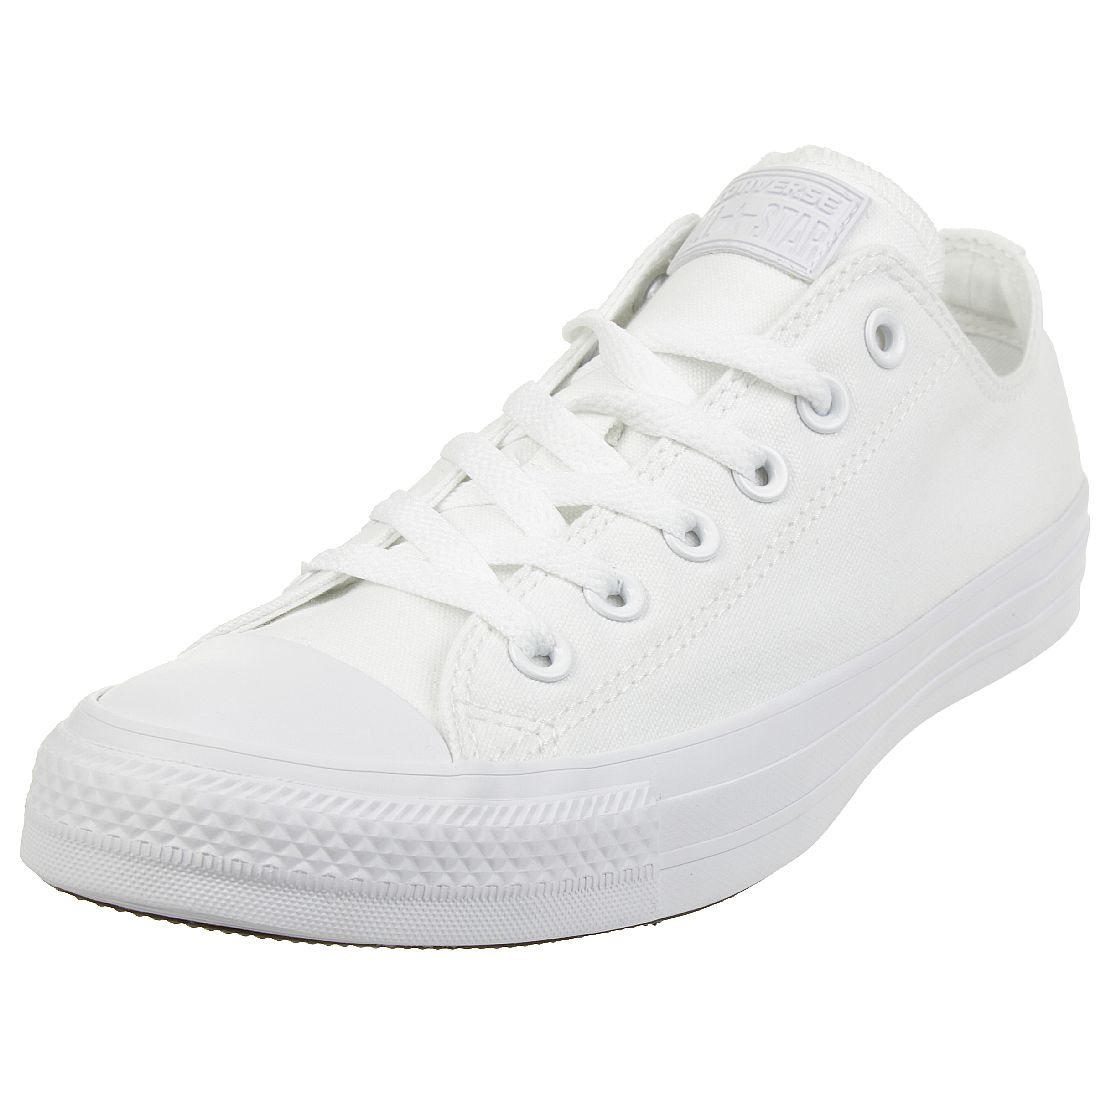 Converse All Star OX Chuck Schuhe Sneaker canvas White